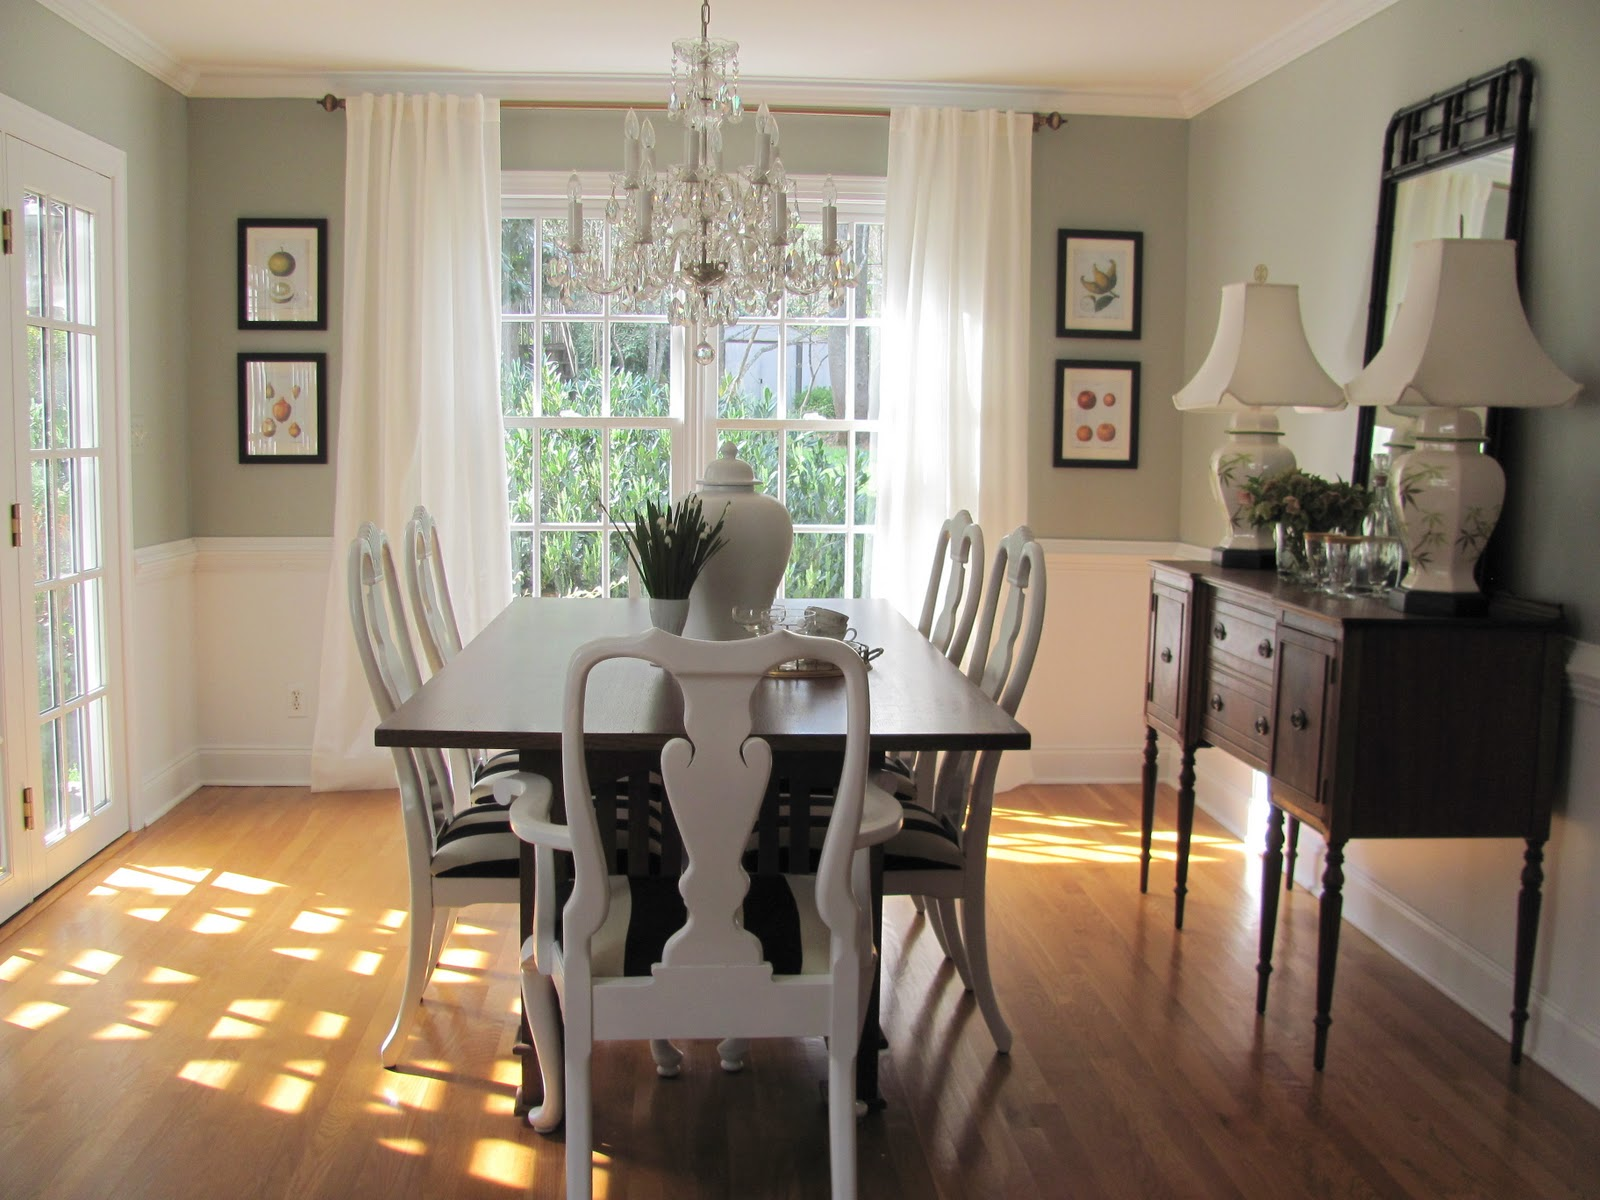 Best dining room paint colors with chair rail - Google Search paint colors small dining room